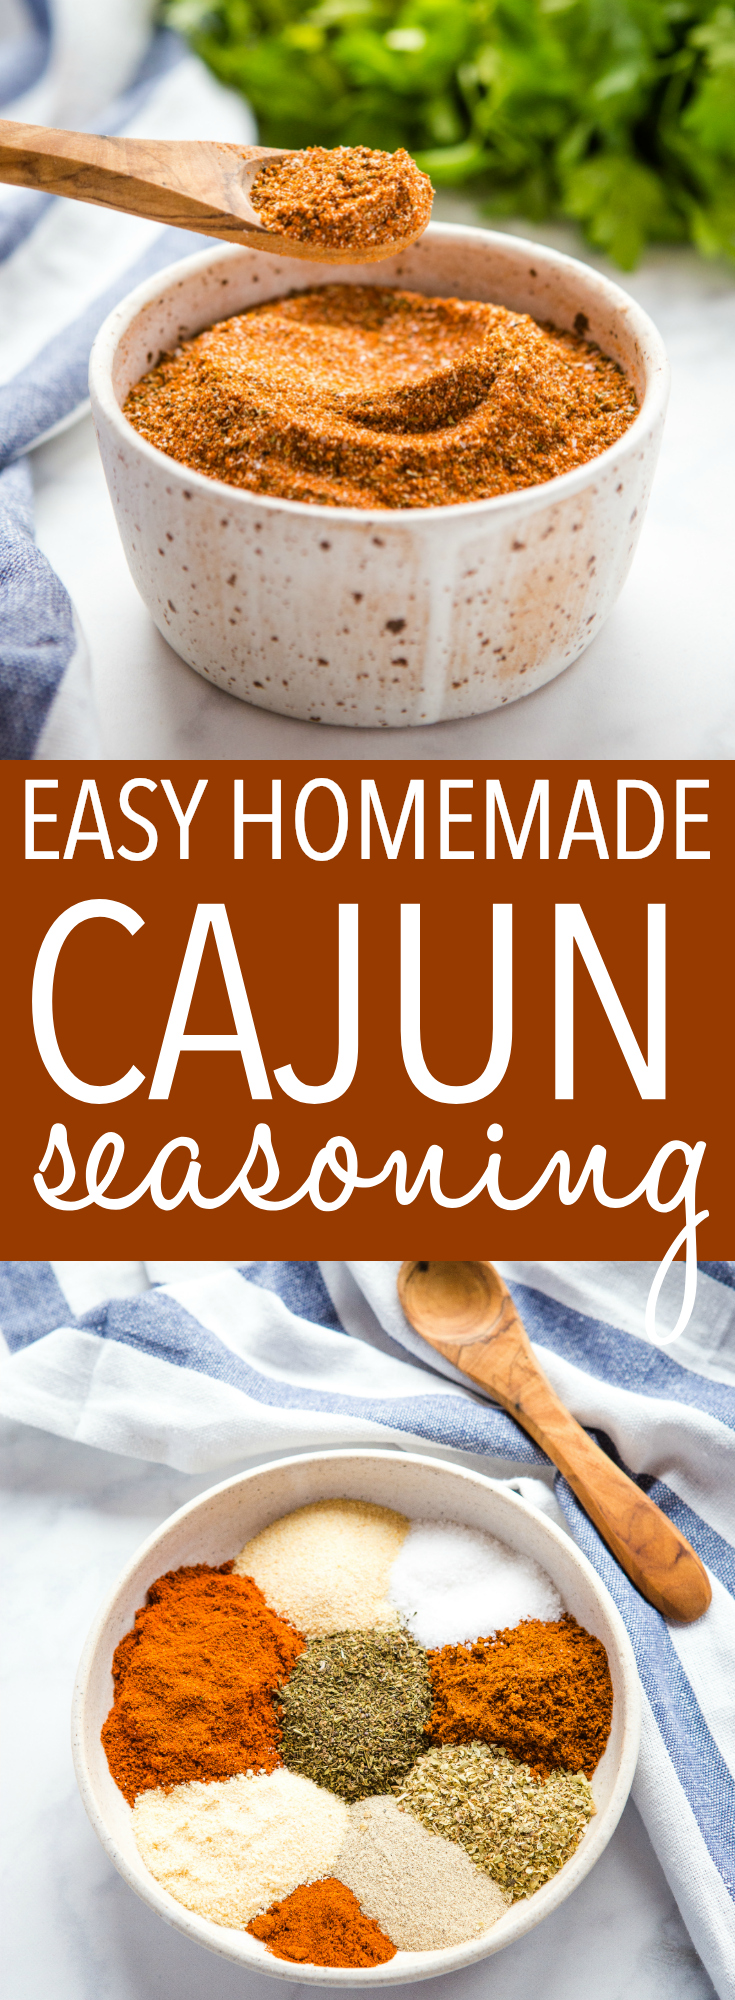 This Easy Homemade Cajun Seasoning Blend is better than any store-bought Cajun seasoning, and it's so easy to make at home! Make it spicy or mild, to your family's tastes! Recipe from thebusybaker.ca! #cajun #seasoning #homemade #DIY #spices #spicy #mild #chicken #shrimp #fish #barbecue #grilling #summer #savemoney #pantry via @busybakerblog